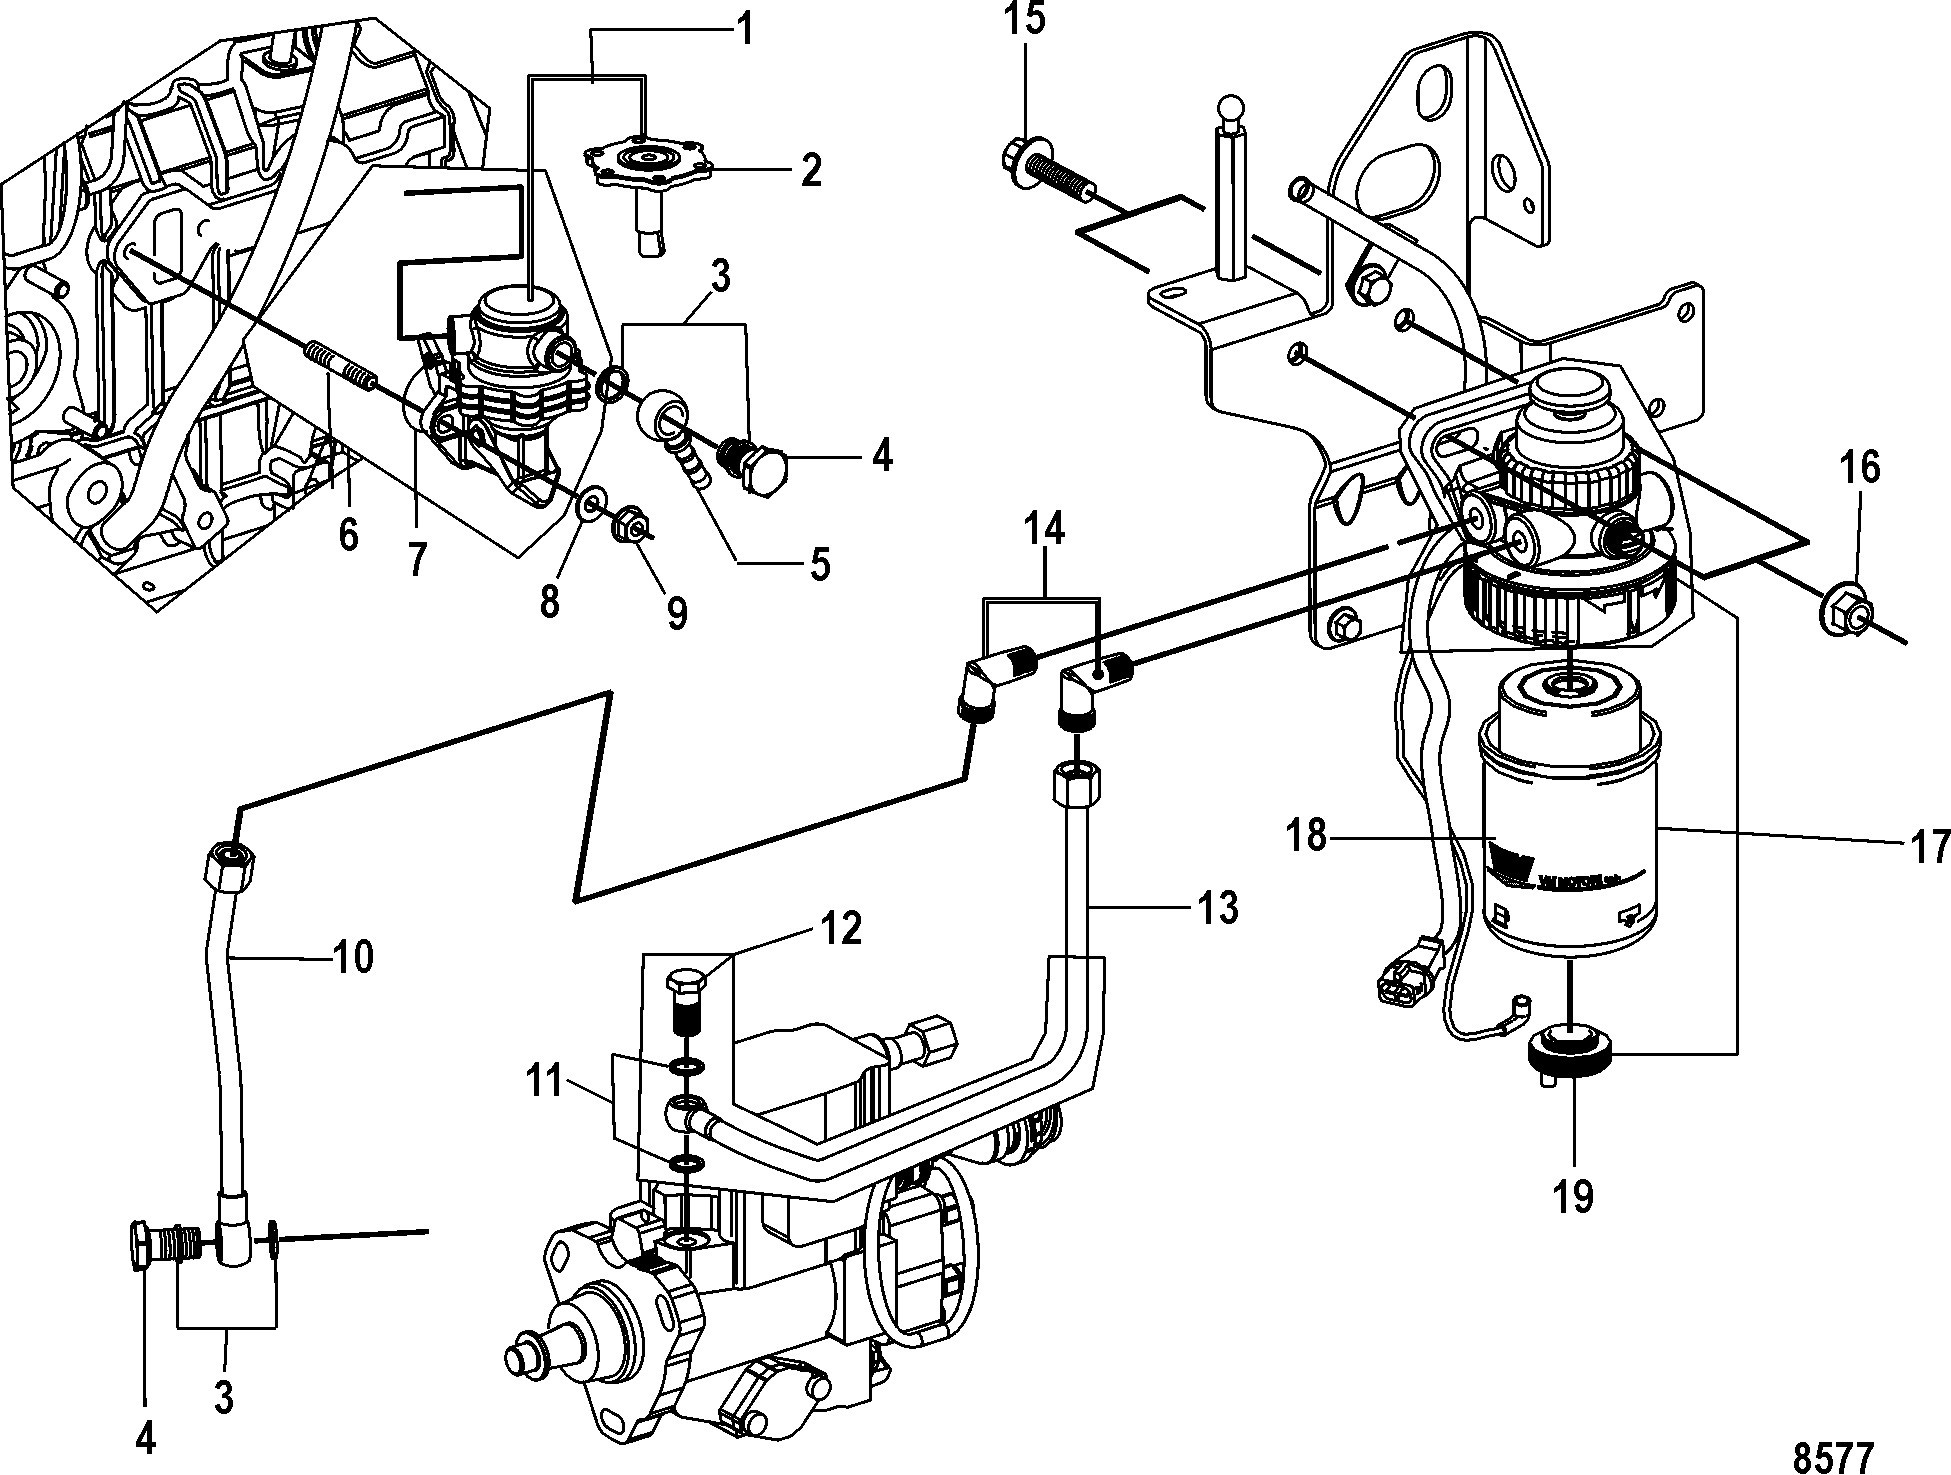 4 3 Mercruiser Engine Diagram | My Wiring DIagram